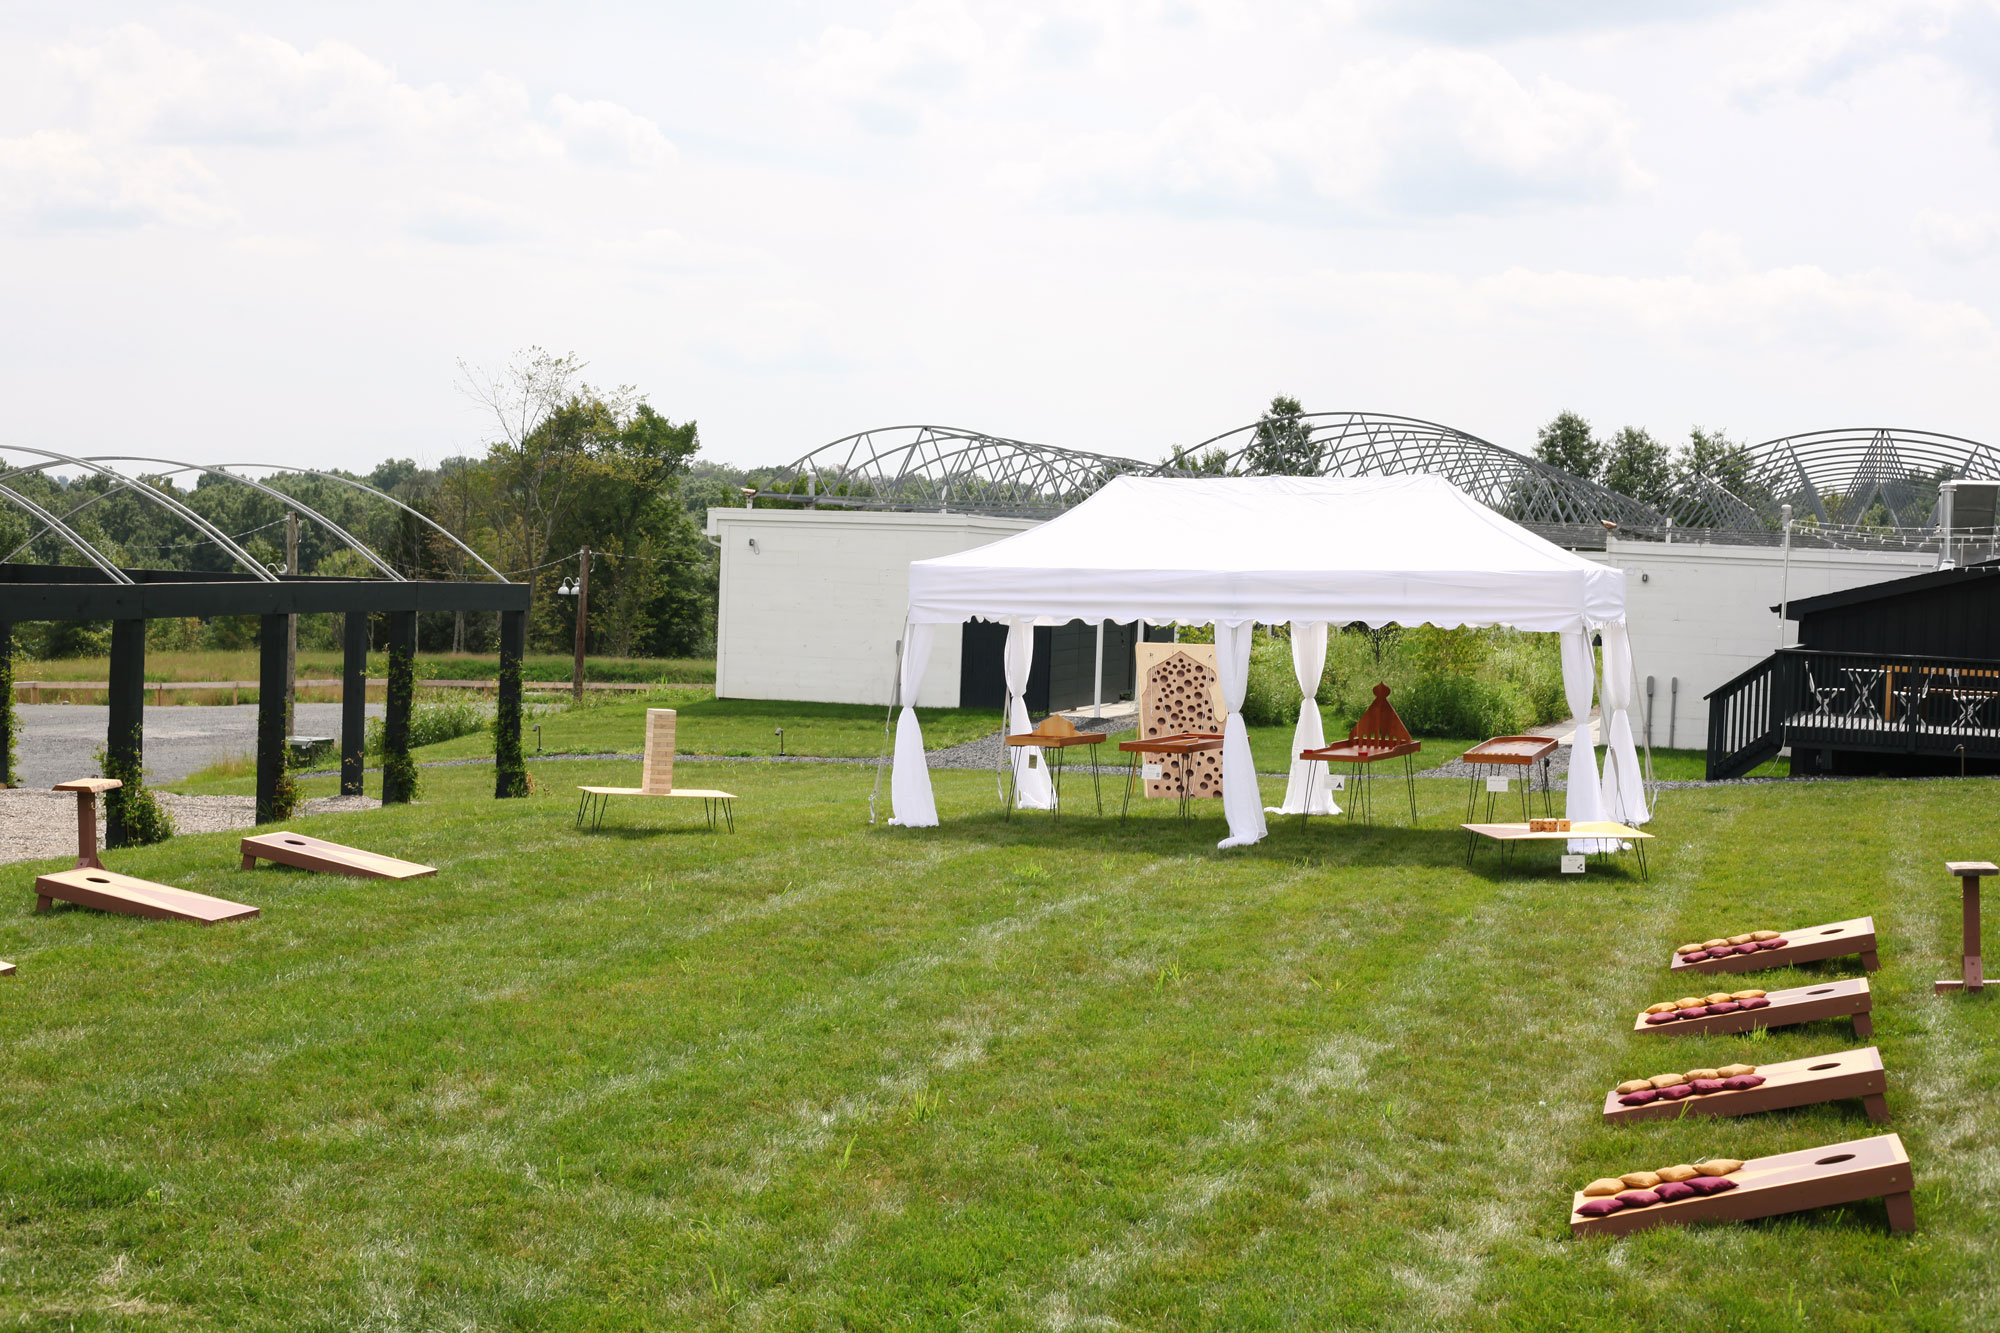 Our 10' x 20' pop-up tent comes with Game Rental Package #2 to lend much-needed shade and protection from the elements for guests enjoying our signature table games, inspired by 1500s Europe and traveling carnivals.